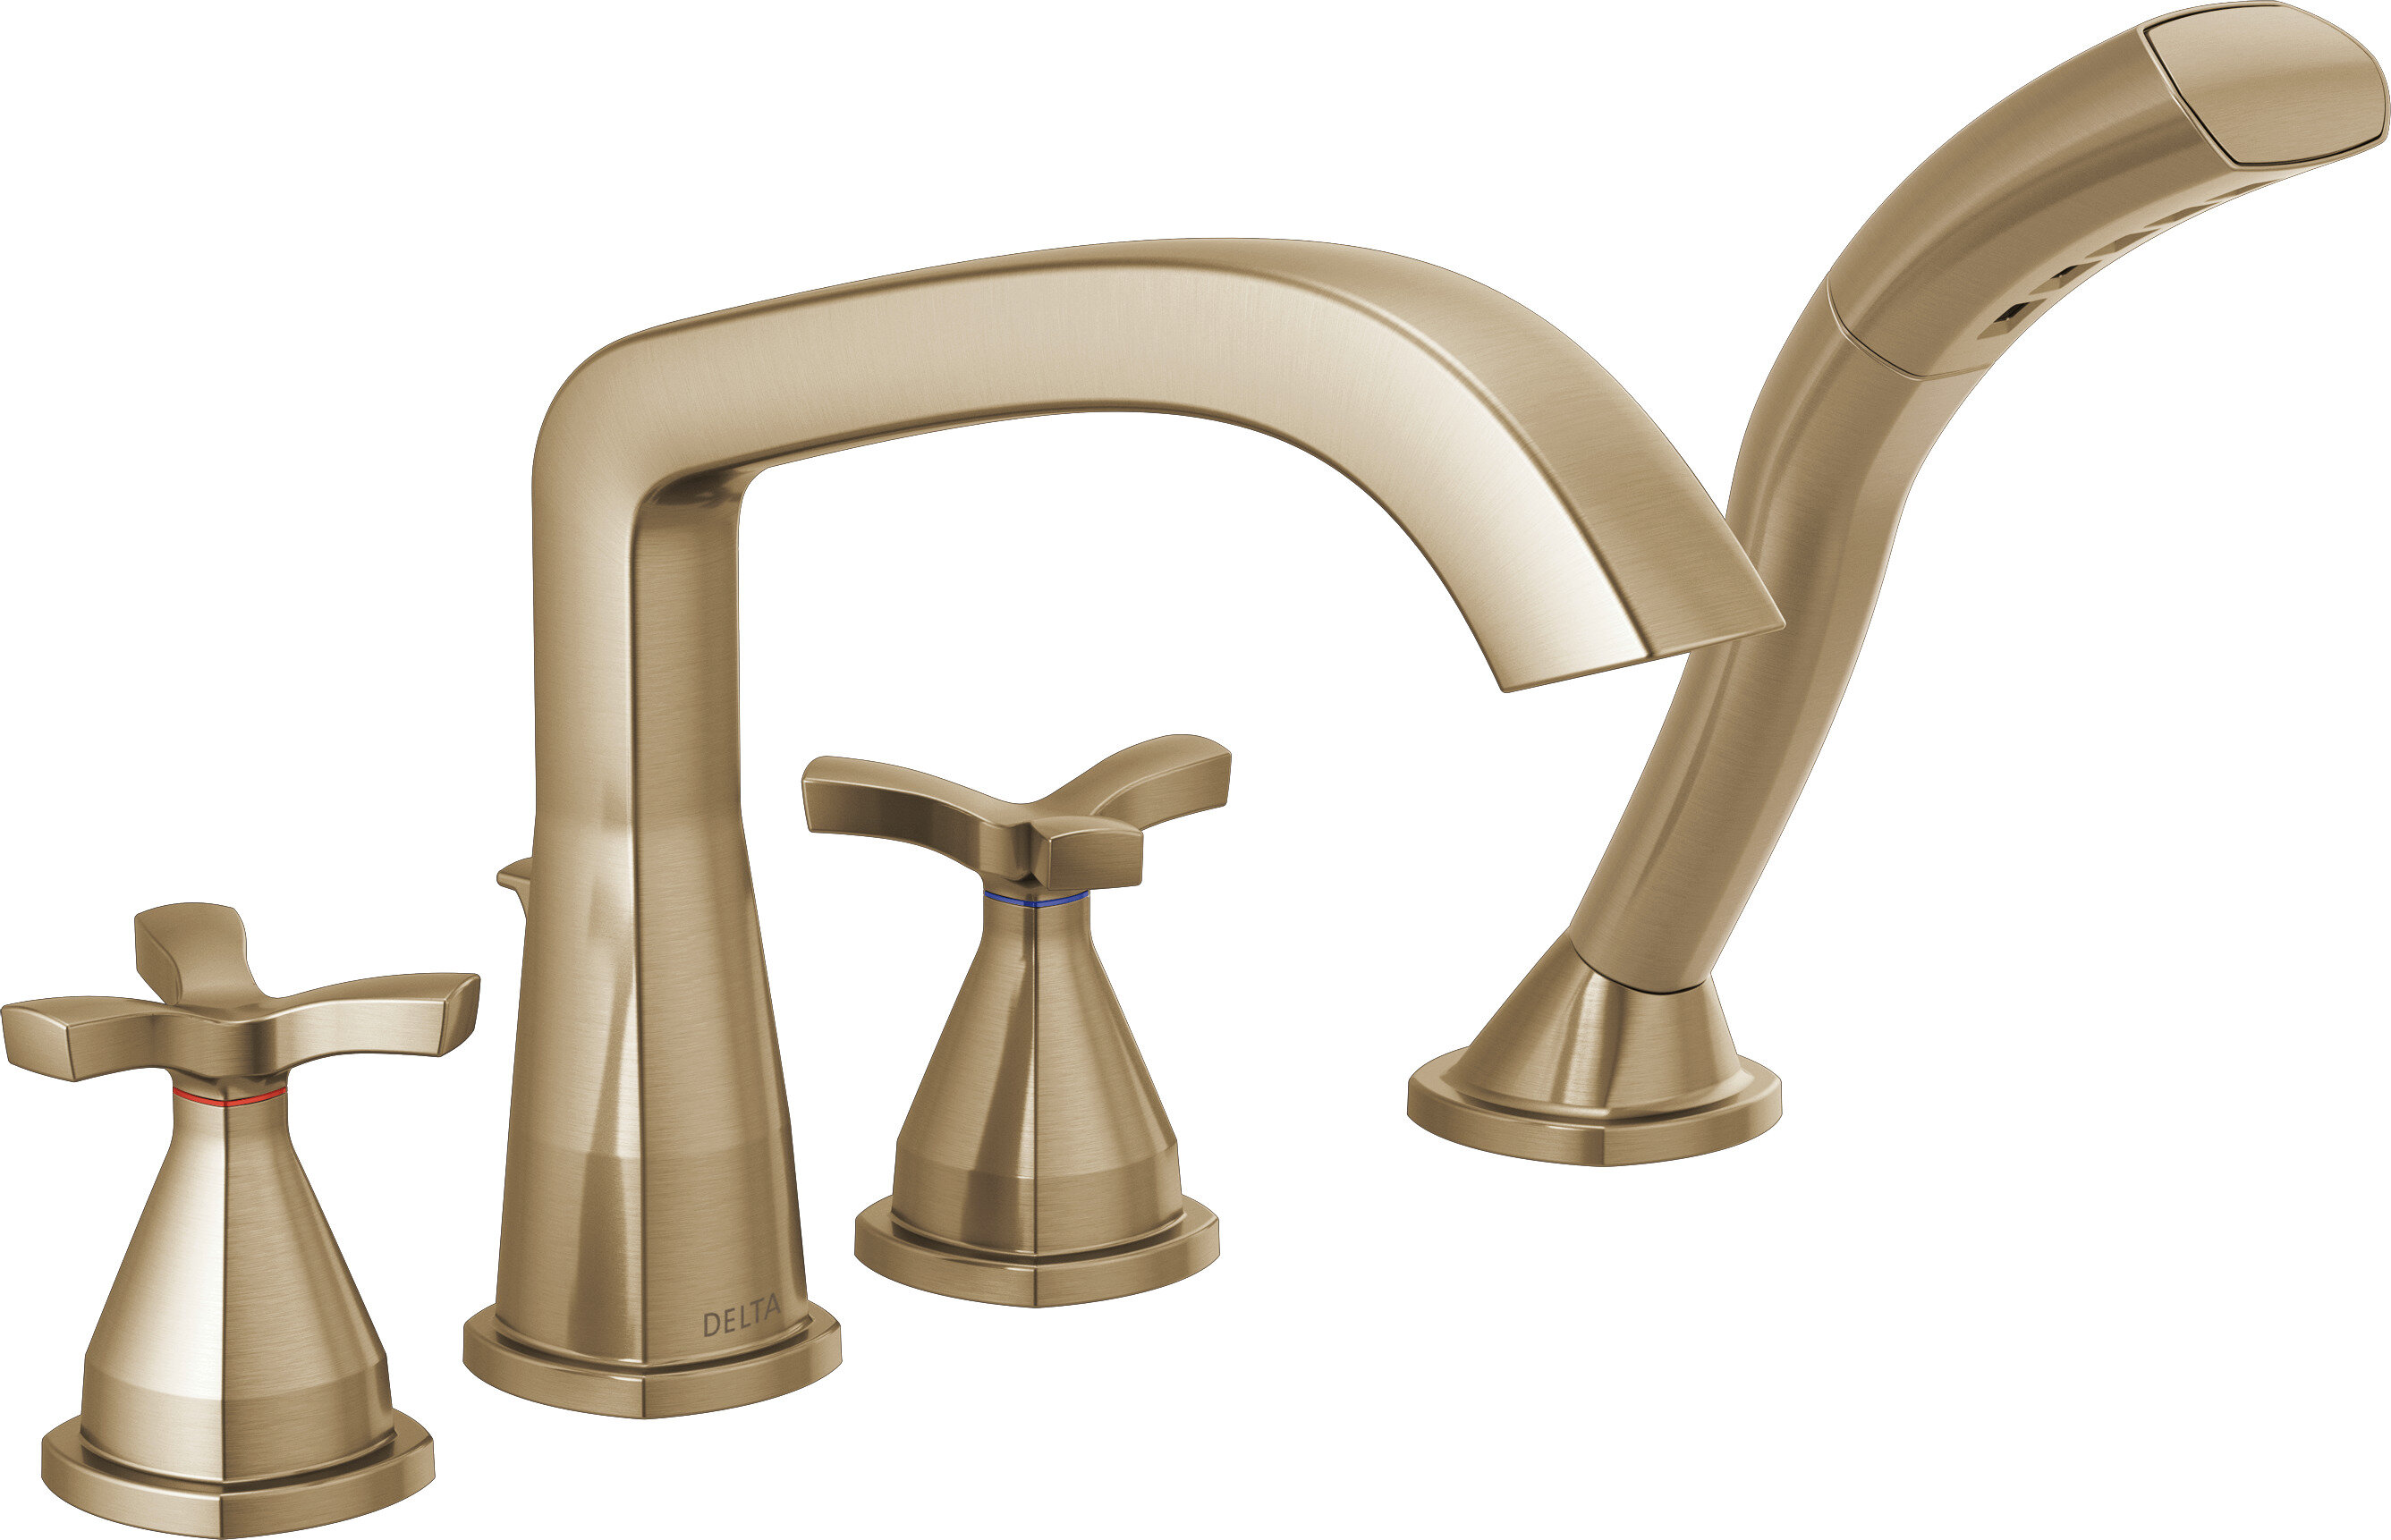 Delta Stryke Double Handle Deck Mounted Roman Tub Faucet Trim With Diverter Wayfair